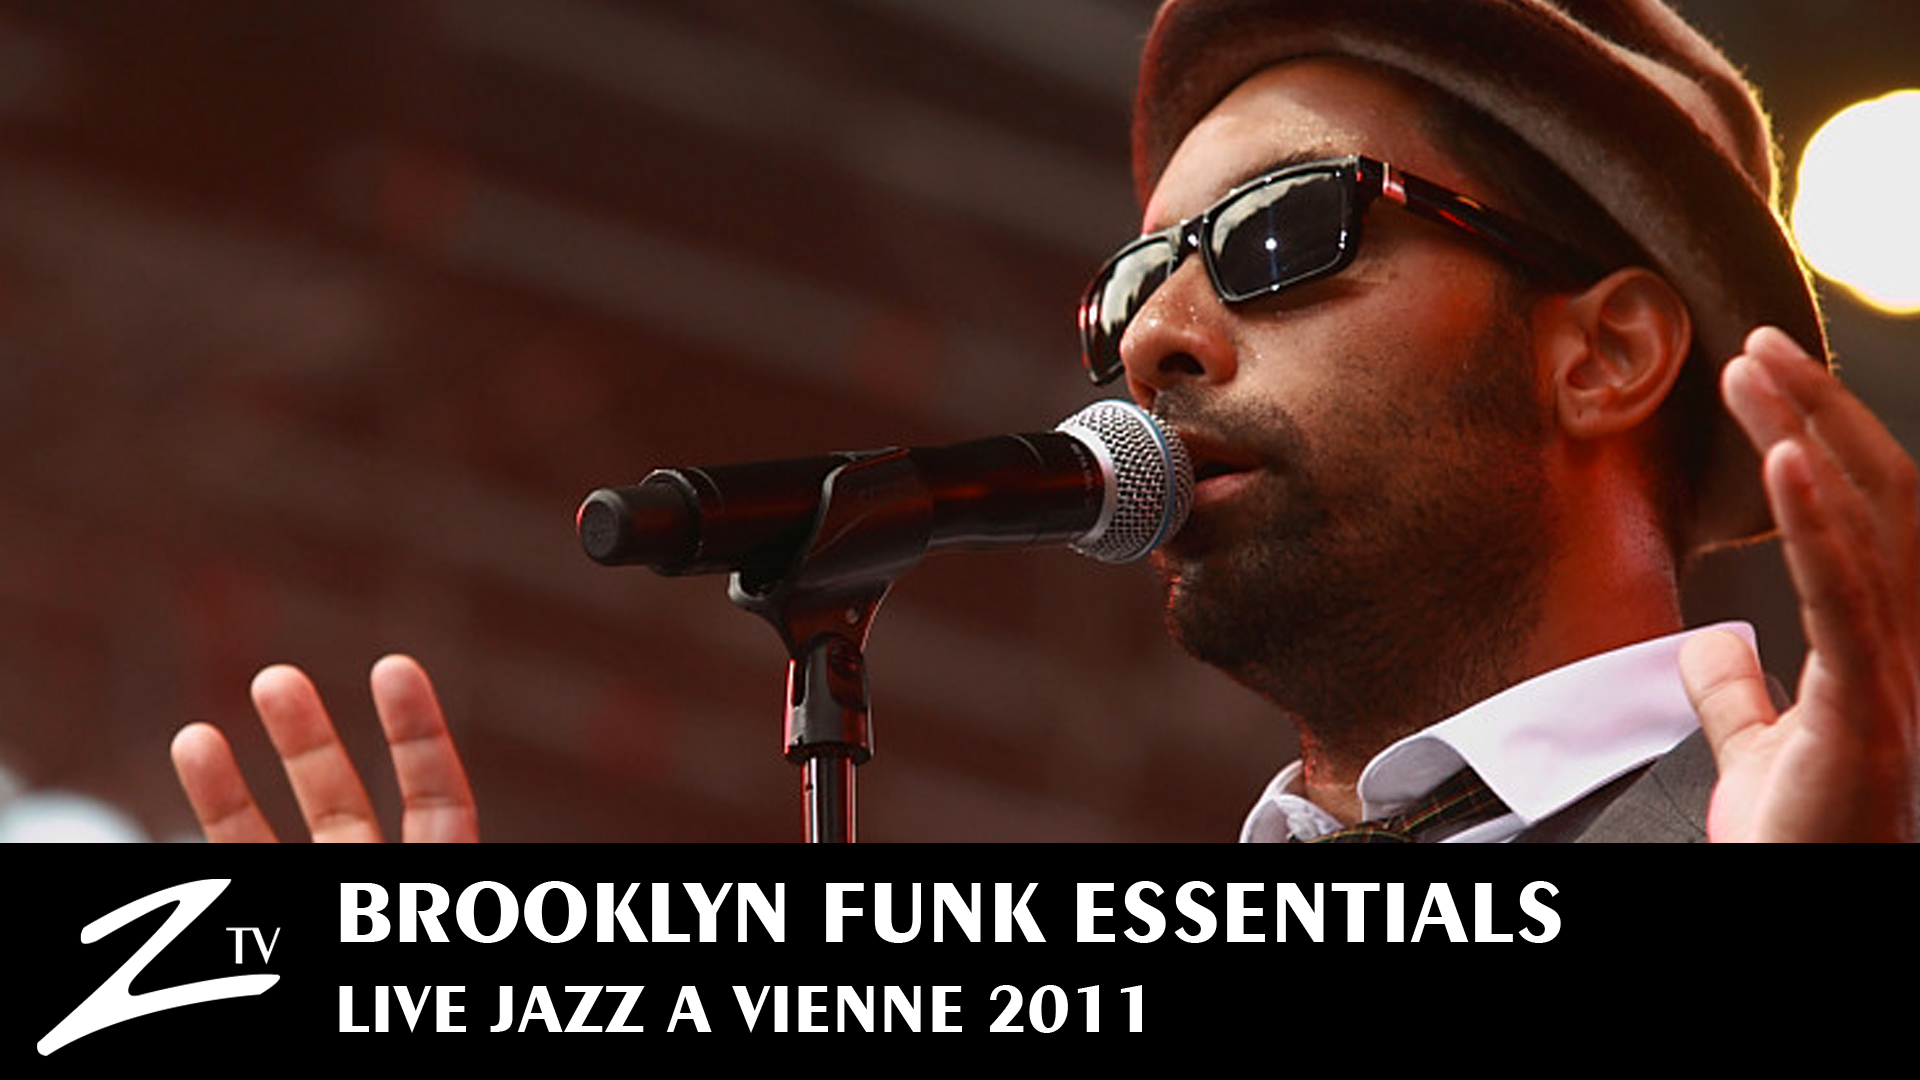 Brooklyn Funk Essentials